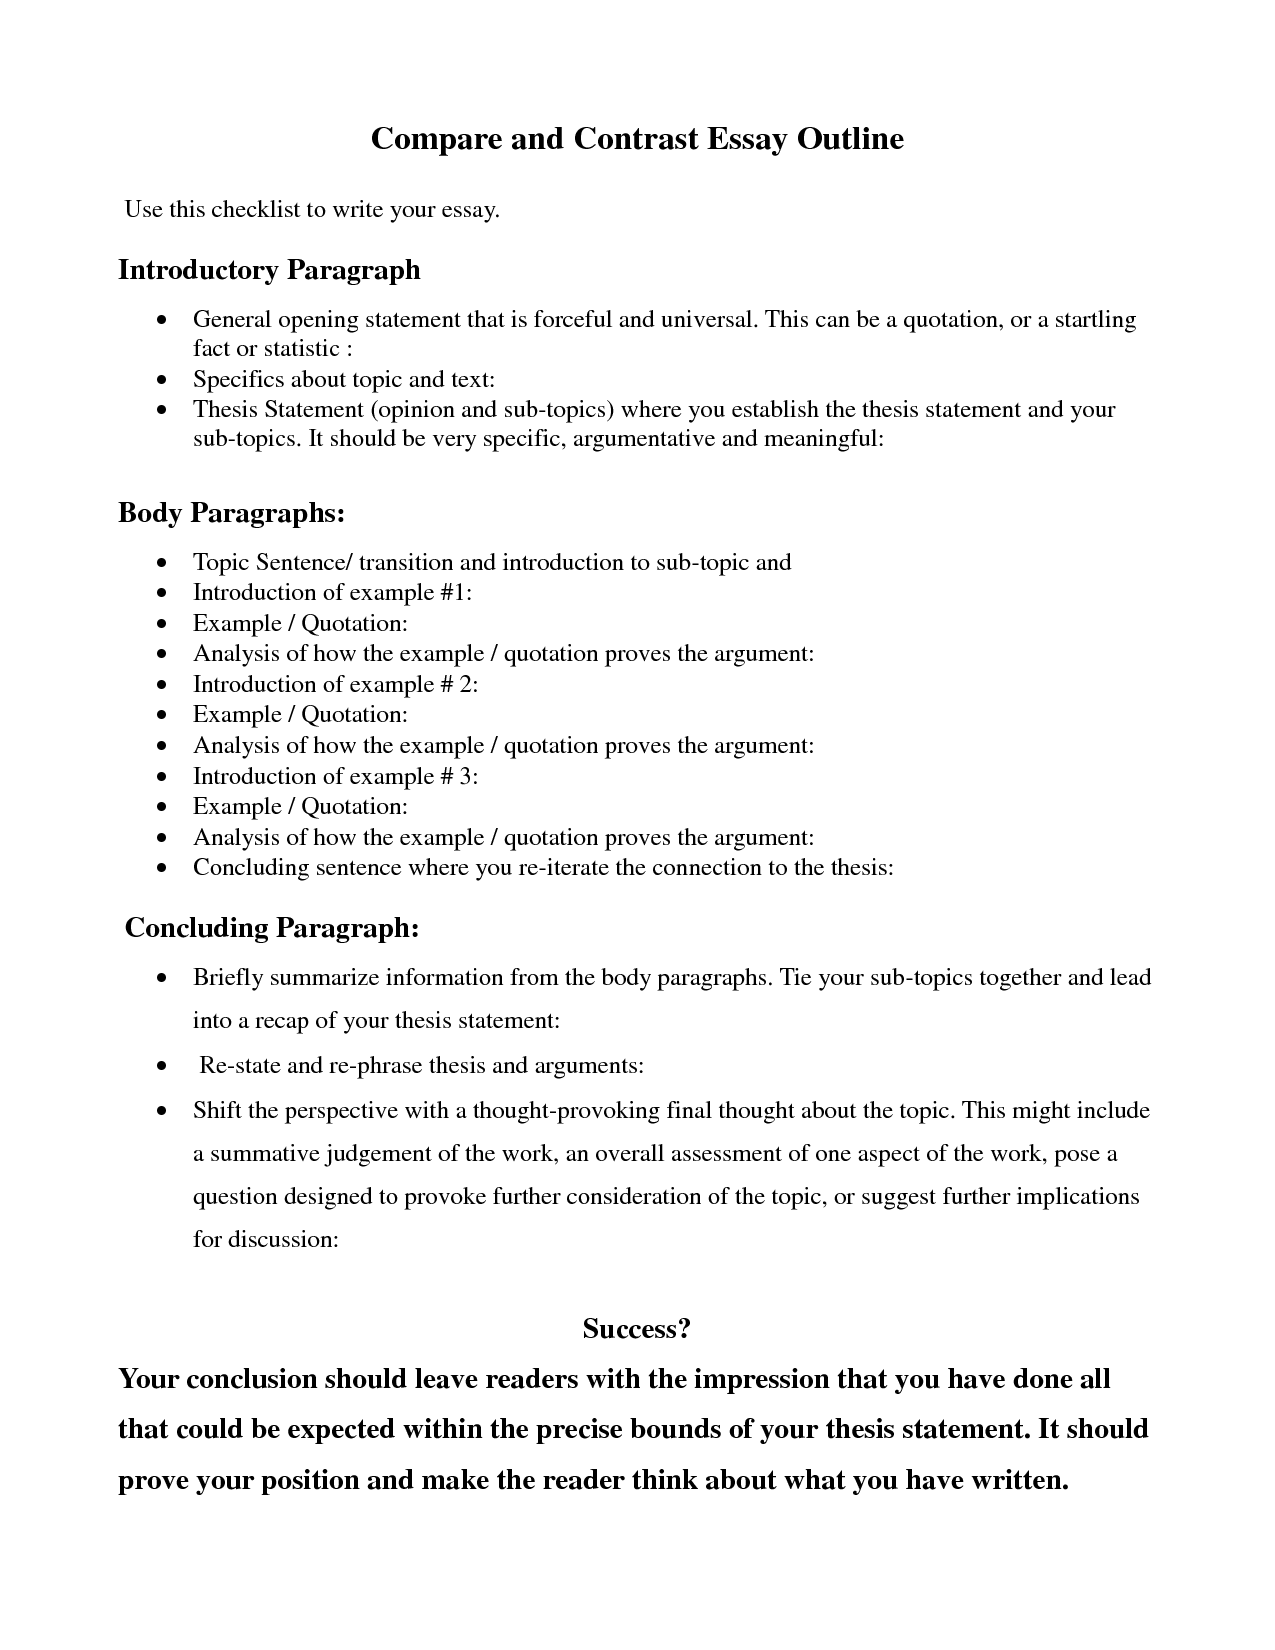 Expository Essay Suggestions, Writing Guidelines, and Test Essays